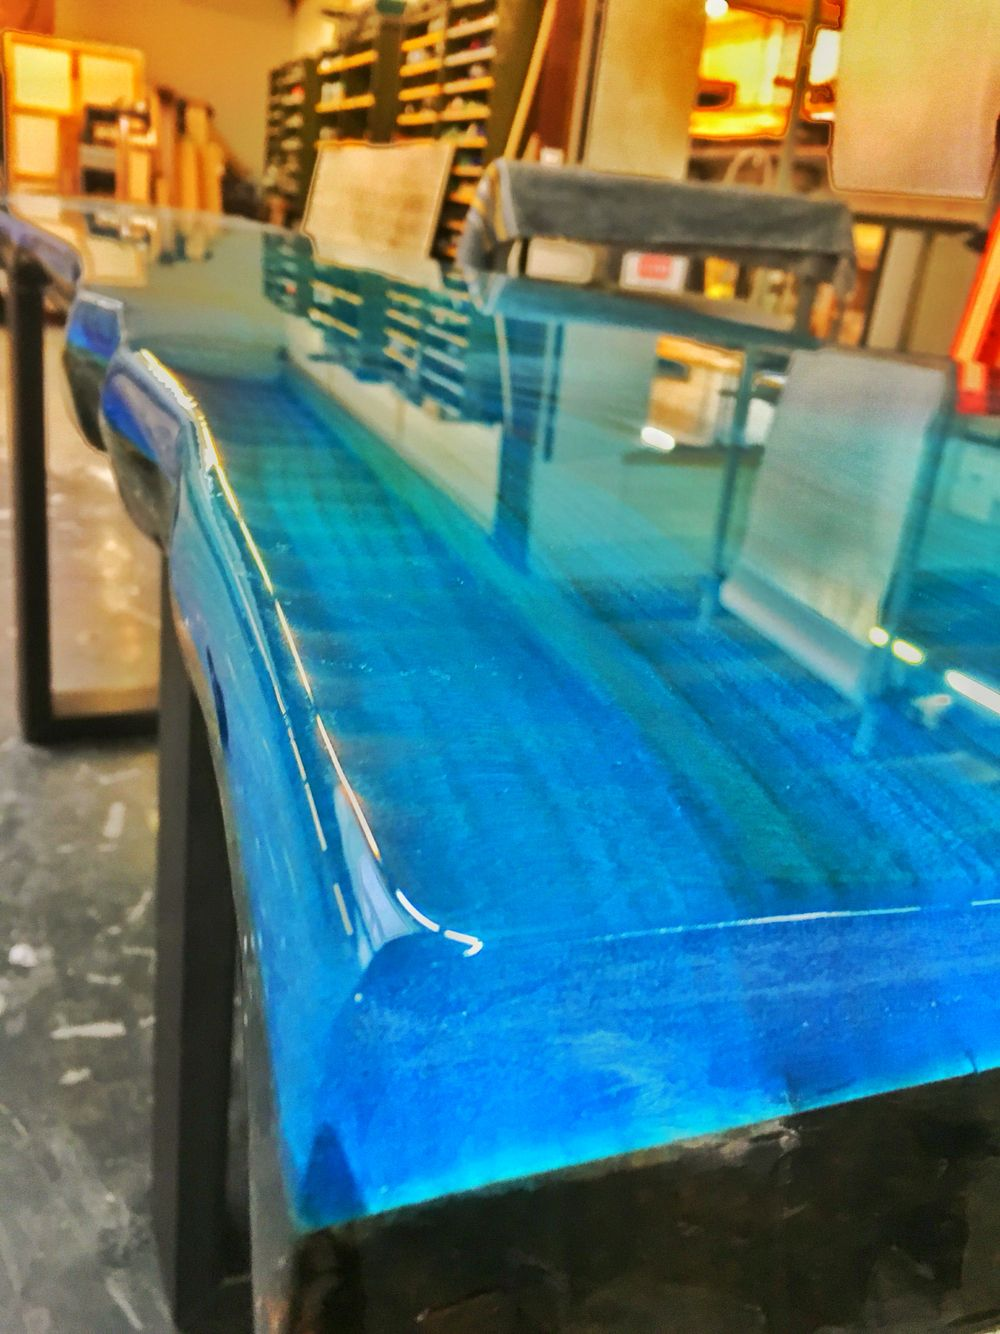 Epoxy resin ocean blue resina con madera pinterest for Resina epoxi madera